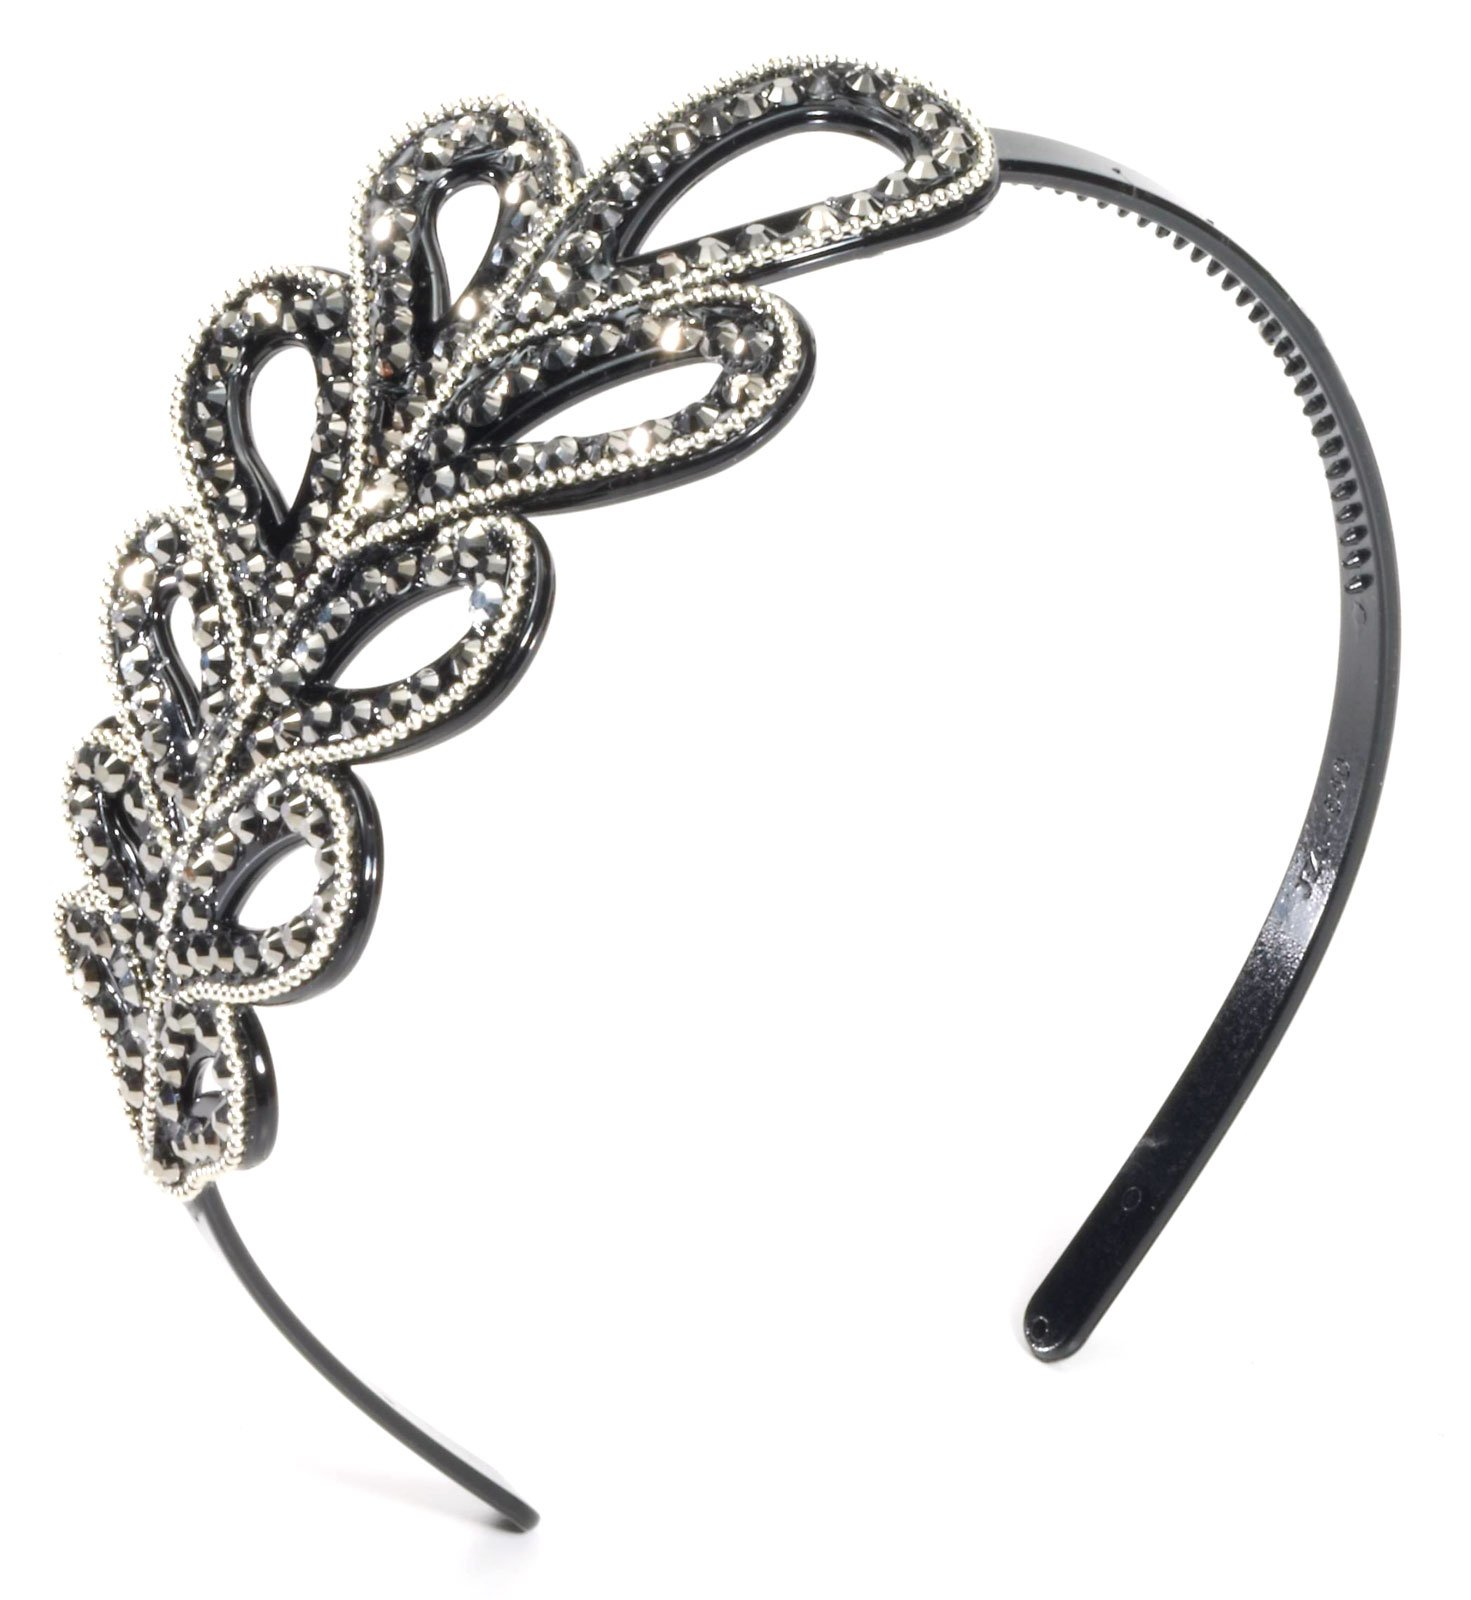 Vintage Hollywood Headband with Leaf Rhinestone Design